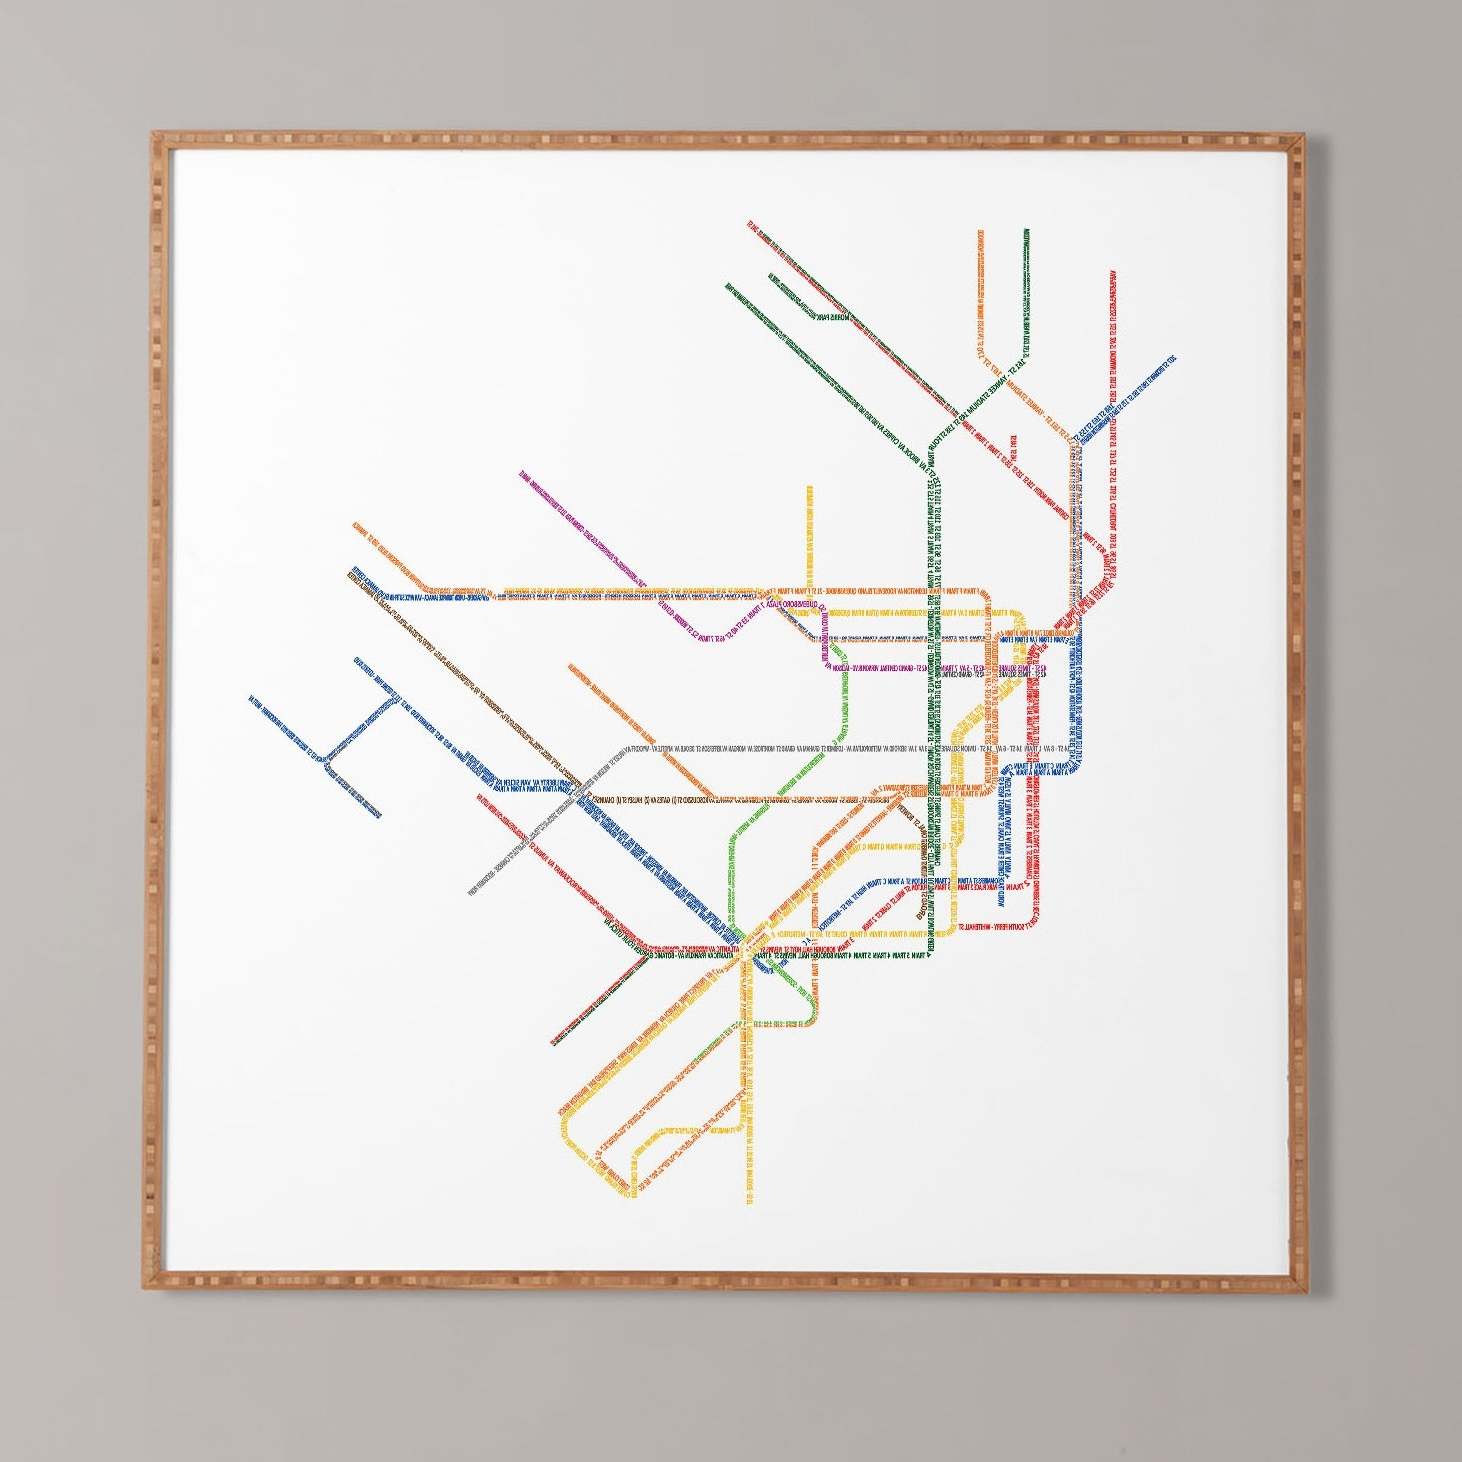 Nyc Subway Map Wall Art With Regard To Most Up To Date Nyc Subway Map' Framed Wall Art & Reviews (View 3 of 20)